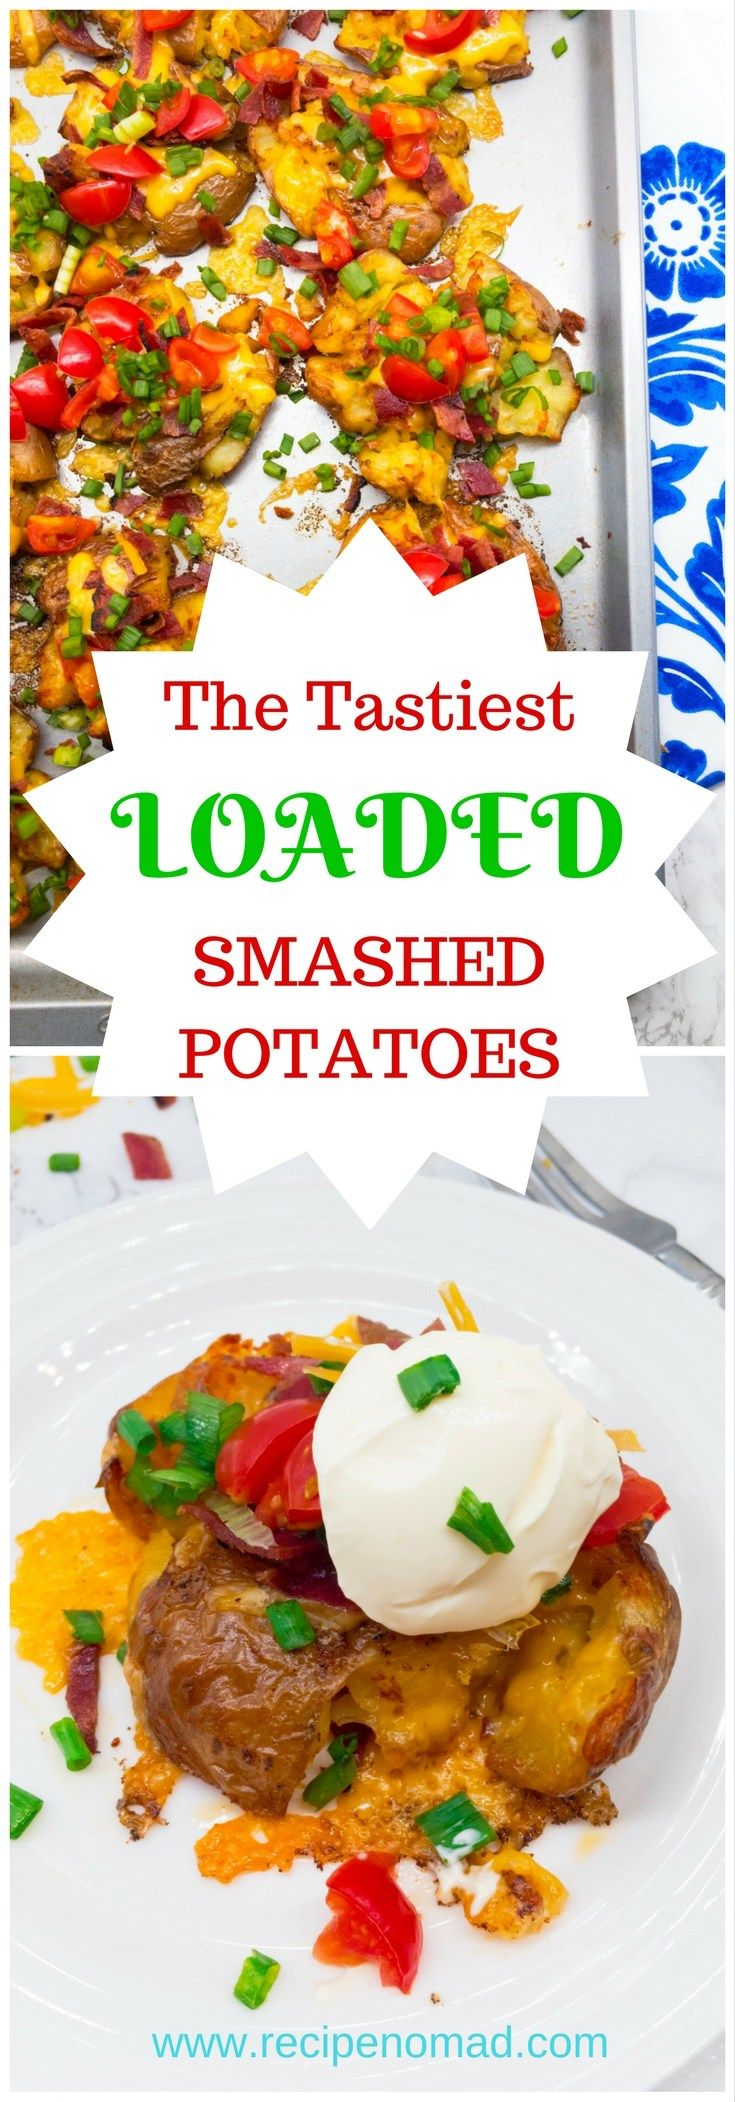 Load these Loaded Smashed Potatoes with your favorite baked potato toppings – cheddar cheese, bacon, tomatoes, green onions and we cannot forget the best part- the sour cream!  The Tastiest Loaded Smashed Potatoes | Recipe Nomad  http://www.recipenomad.com/loaded-smashed-potatoes/